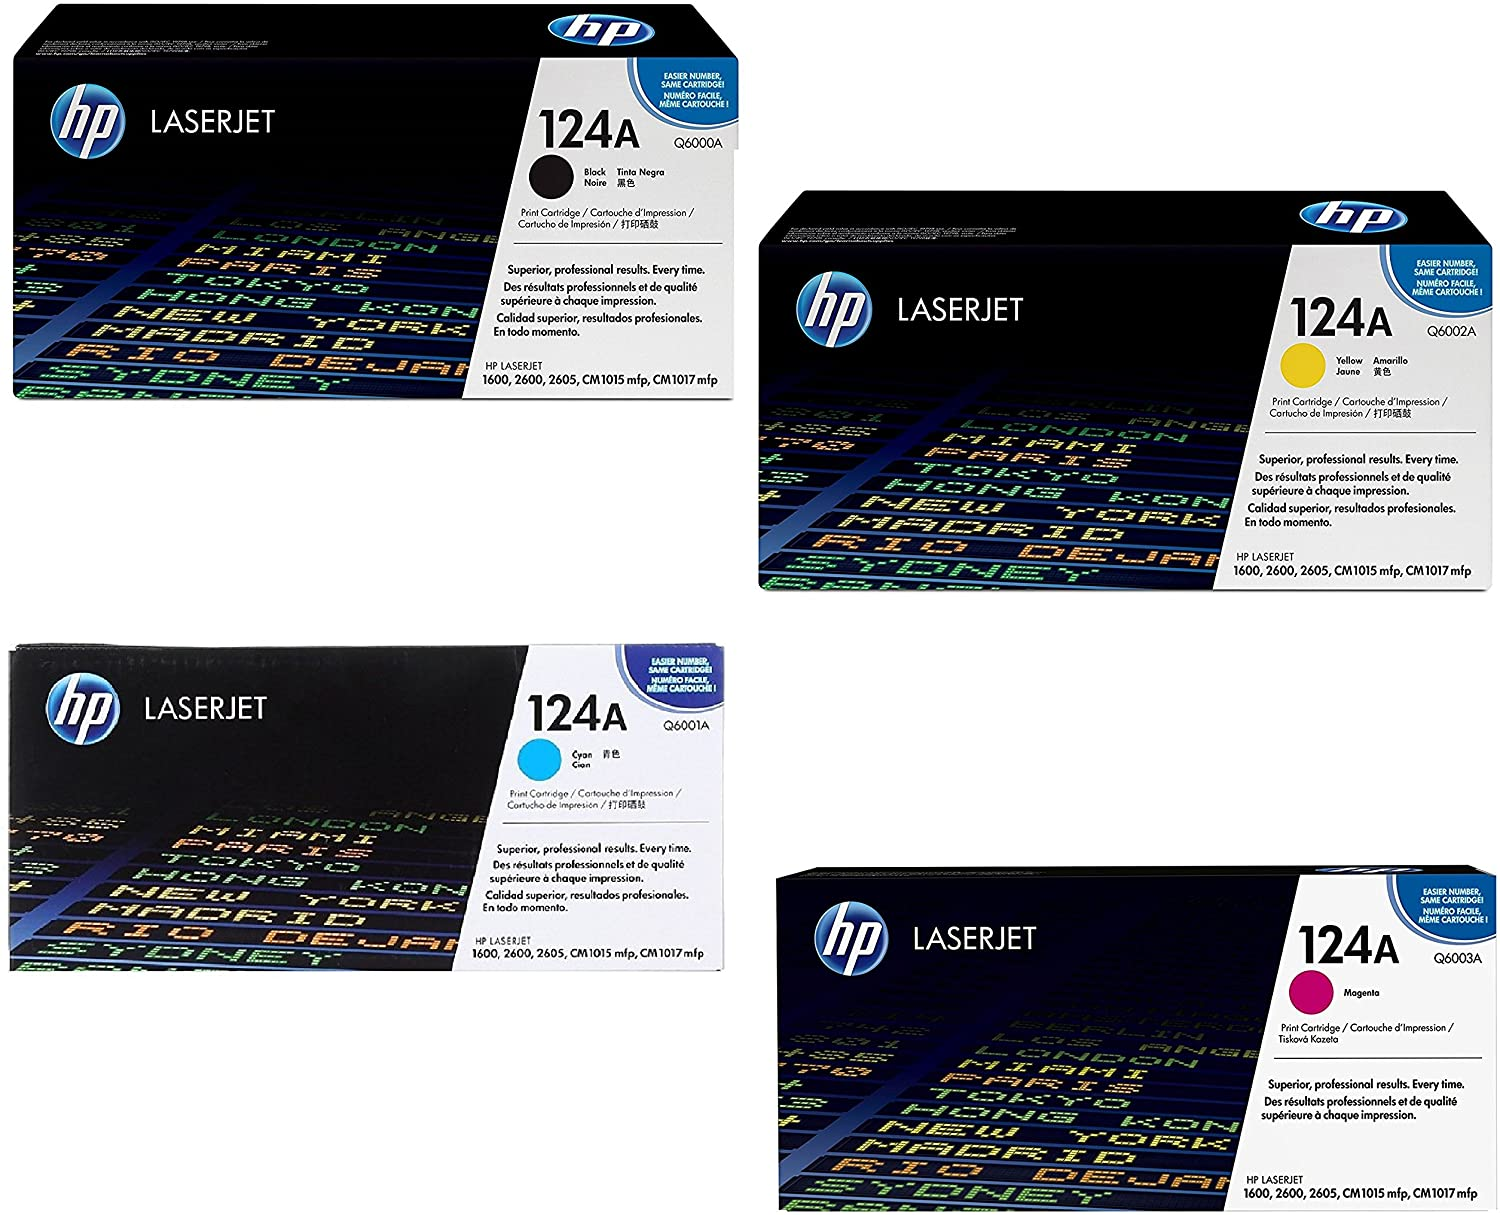 HP 124A Q6000A/Q6001A/Q6002/Q6003A 4 Colors Toner Cartridges For LaserJet 2600n 1600 2605 1015 1017